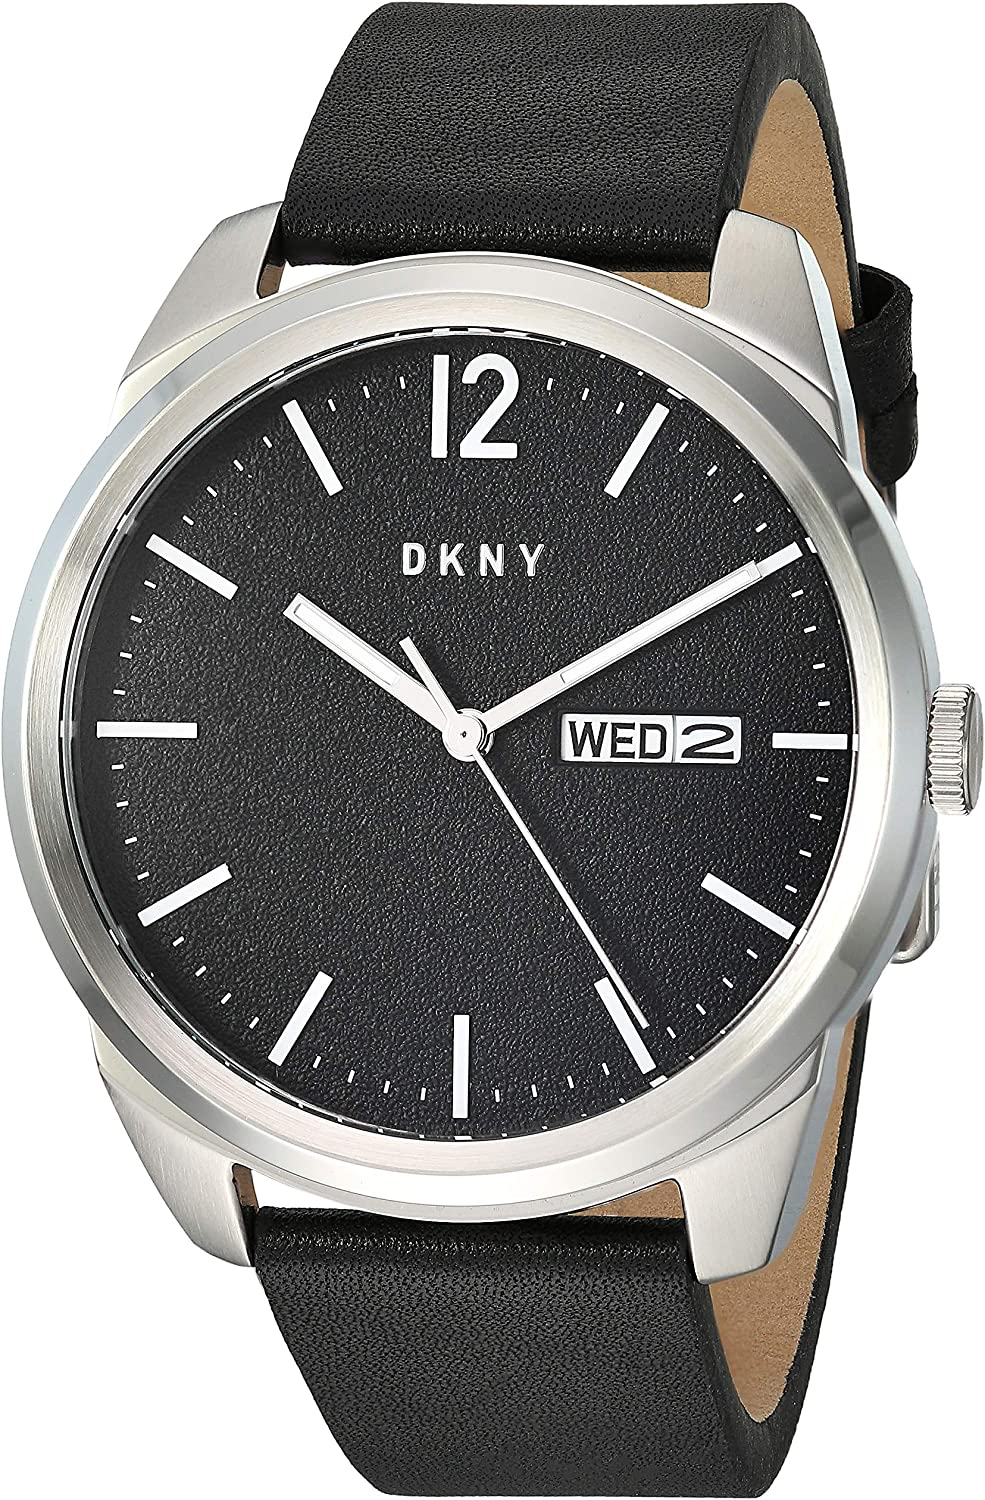 DKNY Men's Gansevoort Stainless Steel Quartz Watch with Leather Strap, Black, 22 (Model: NY1604)